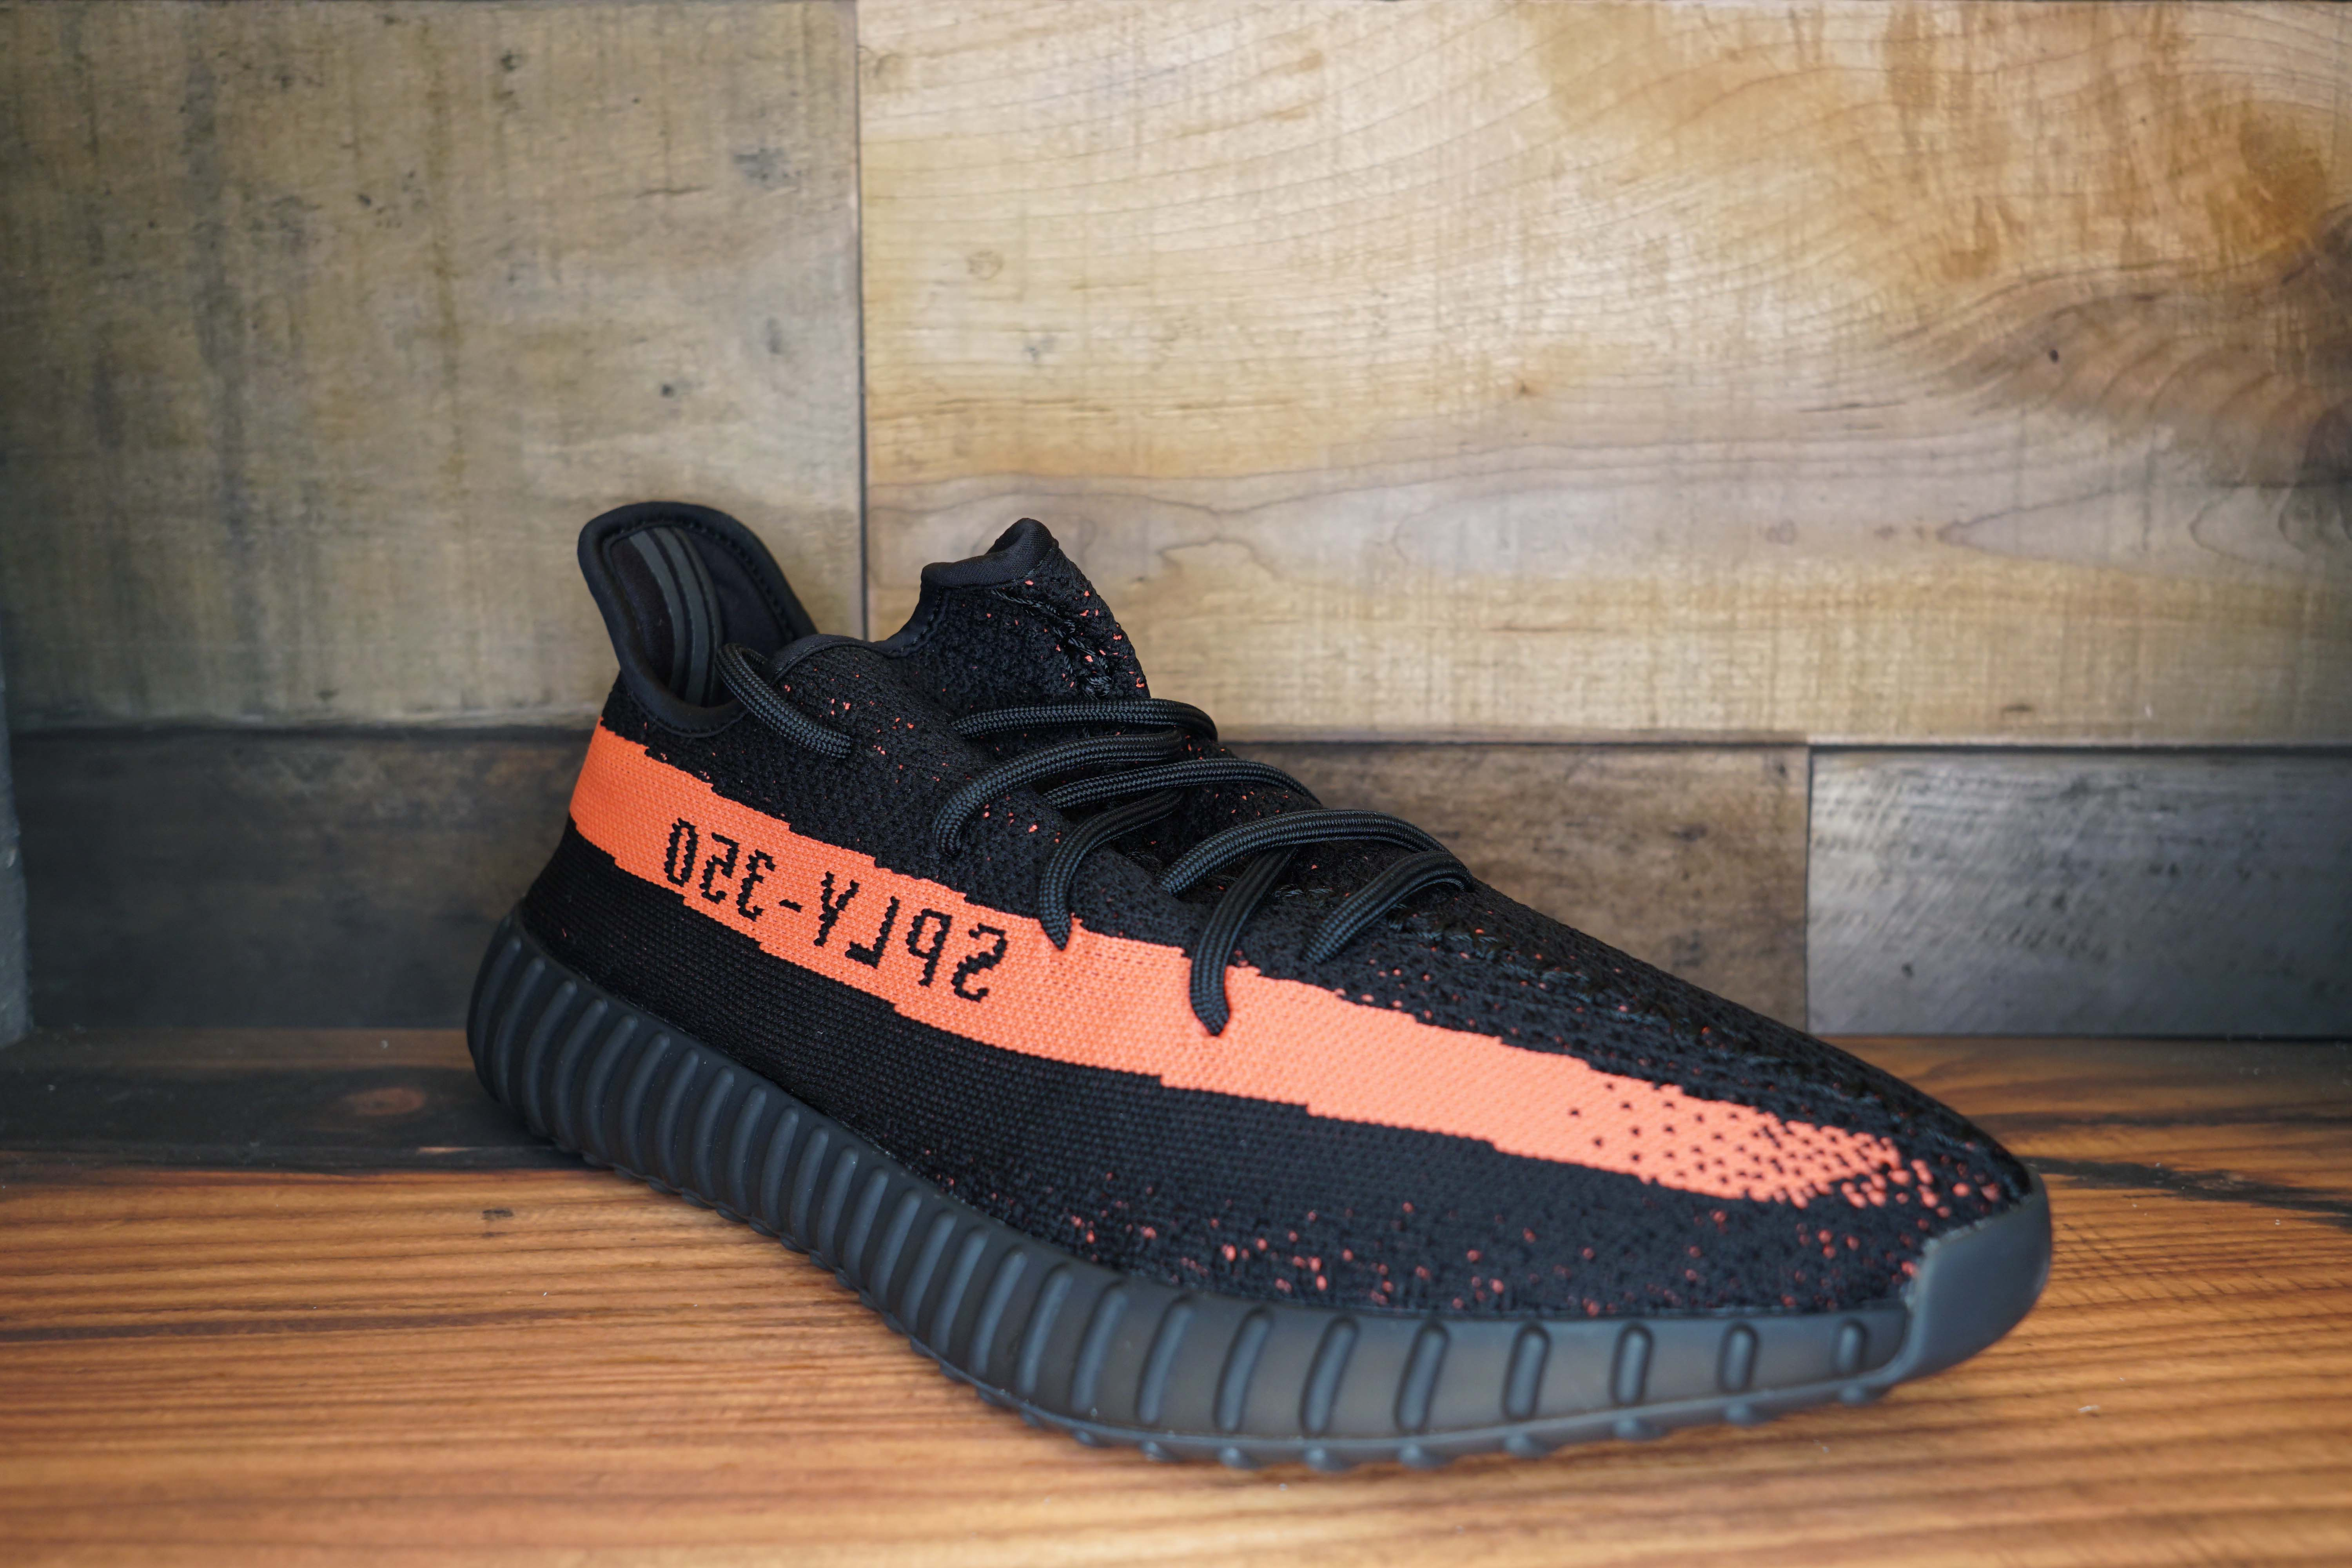 premium selection f019c b00b5 ... discount code for adidas yeezy boost 350 v2 red 2016 new d2817 8d051